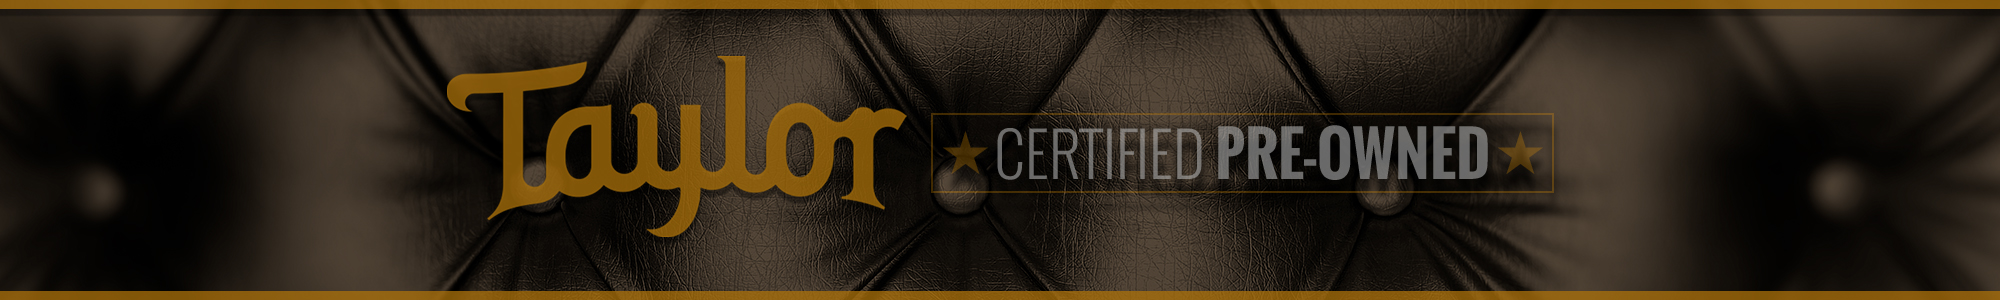 Taylor Certified Pre-Owned